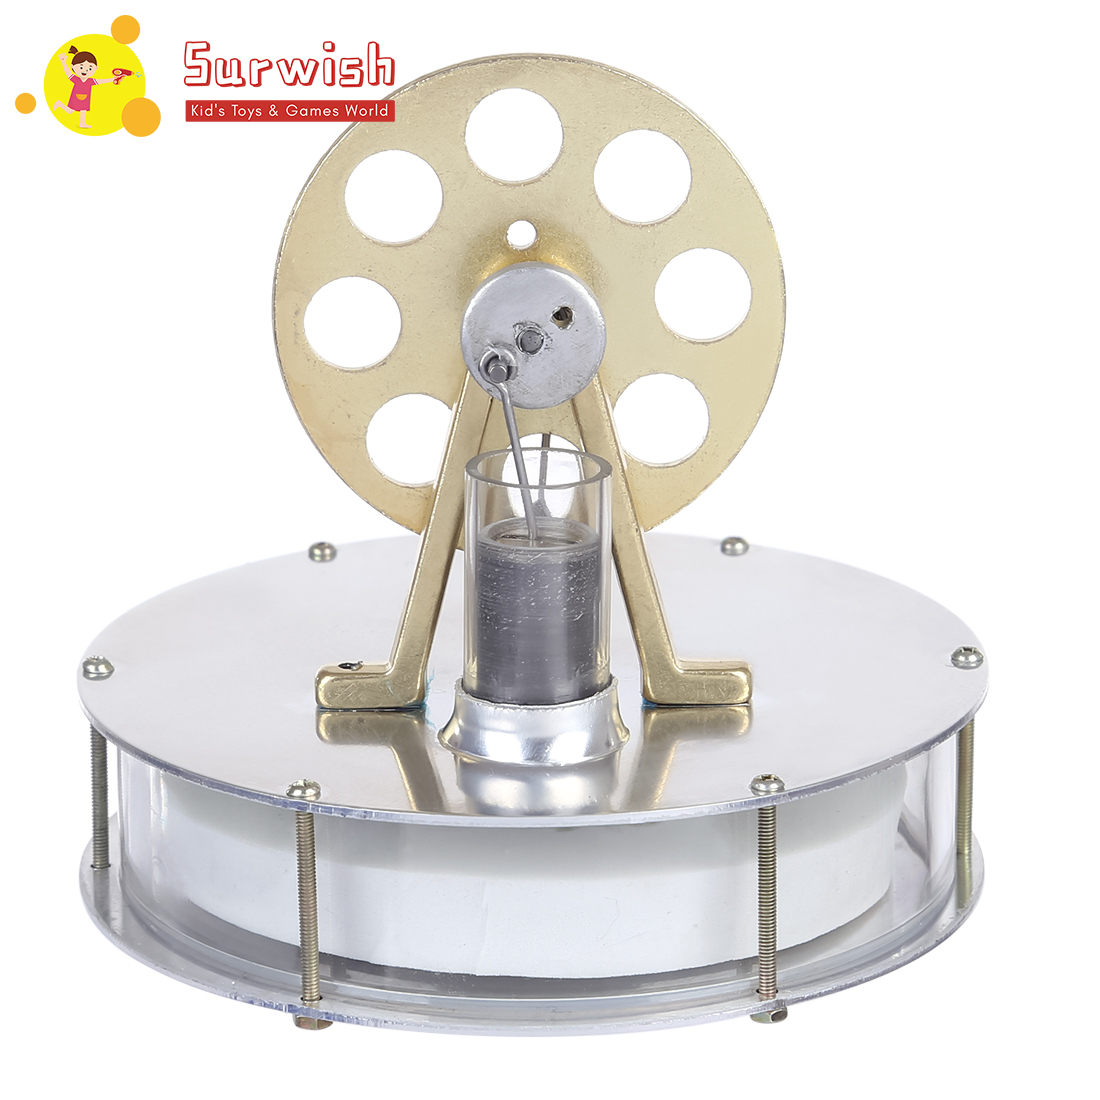 Stirling Low Temperature Engine Motor Steam Heat Education Model Toy